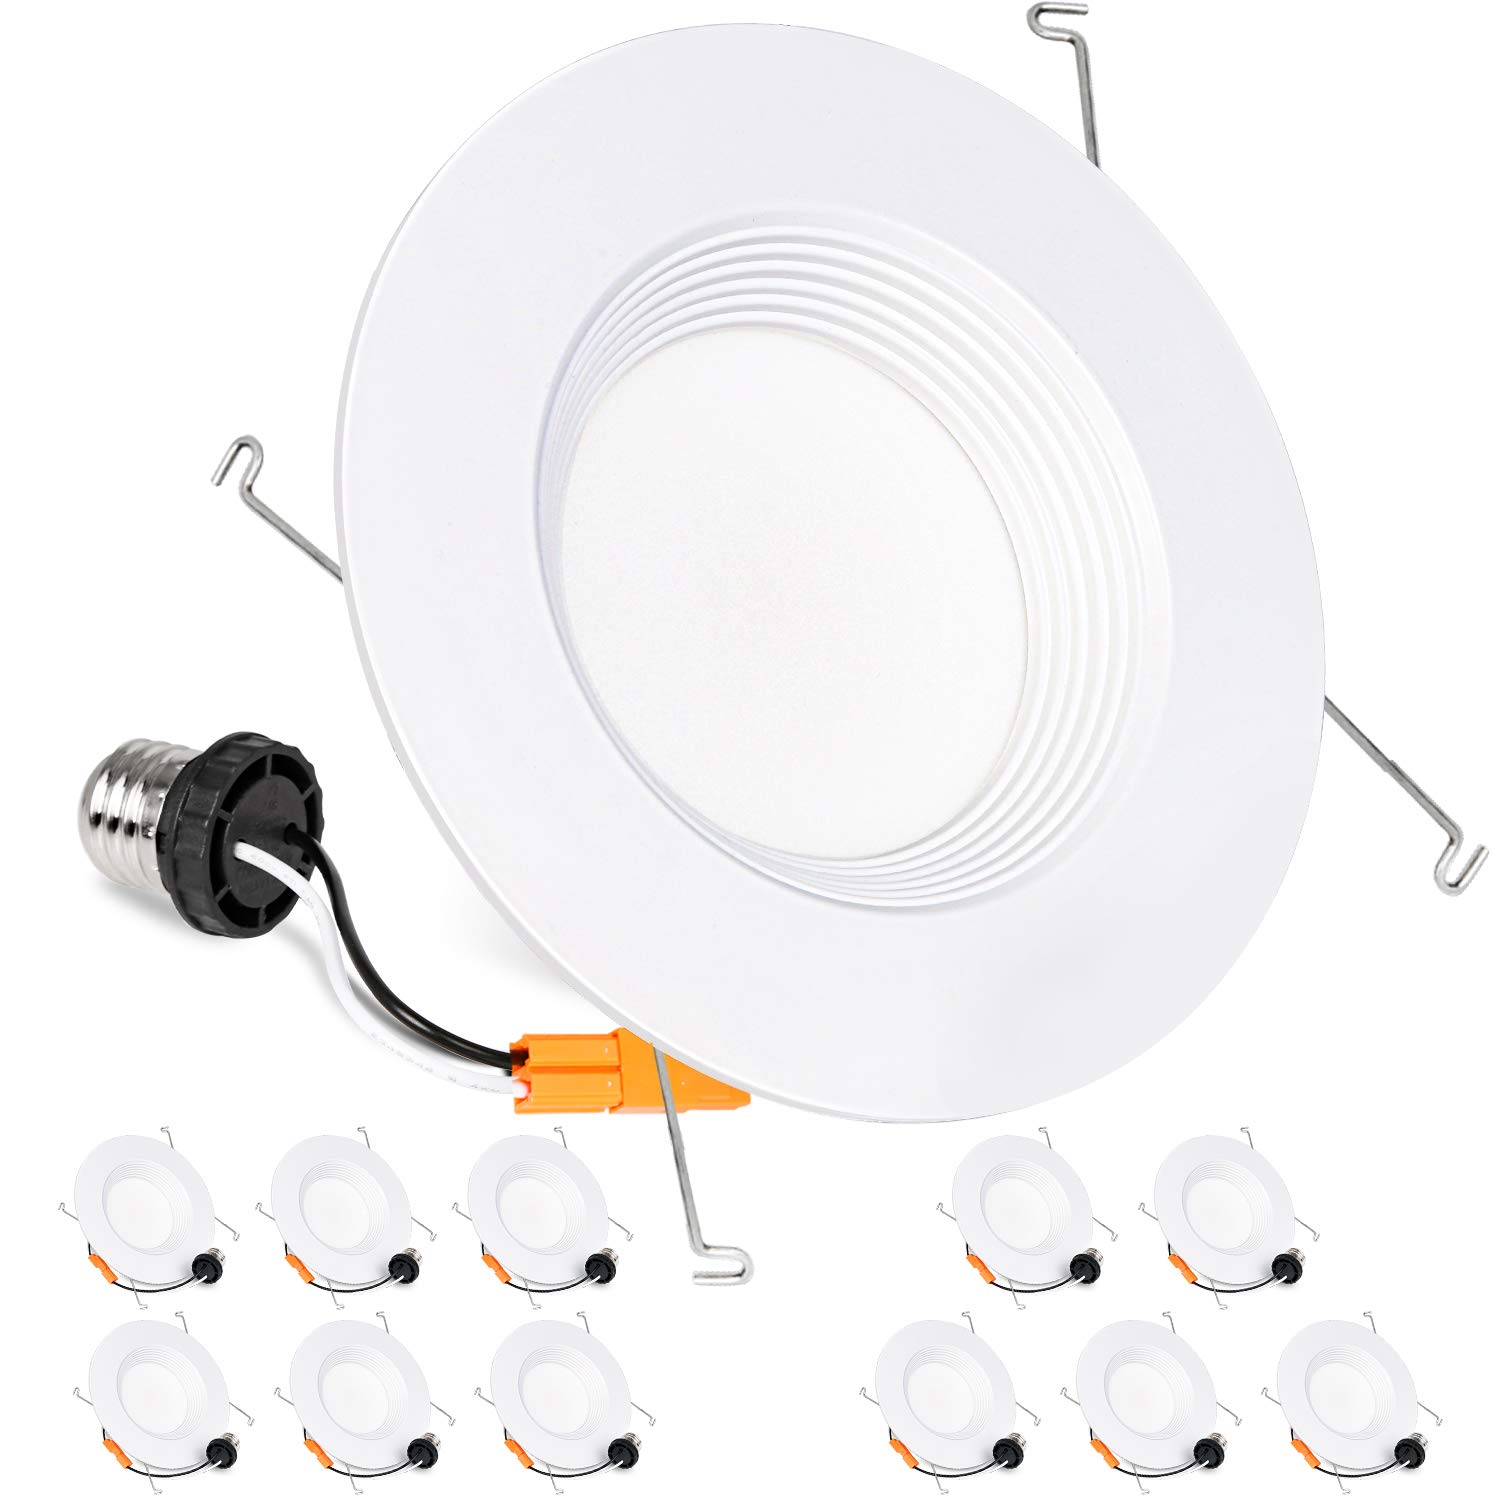 Hykolity 12 Pack 5/6 Inch LED Recessed Downlight Retrofit, 15W LED Can Light Bulb, Baffle Trim, 1000lm 4000K Neutral White LED Recessed Ceiling Light, CRI90, Damp Rated, Dimmable, ETL